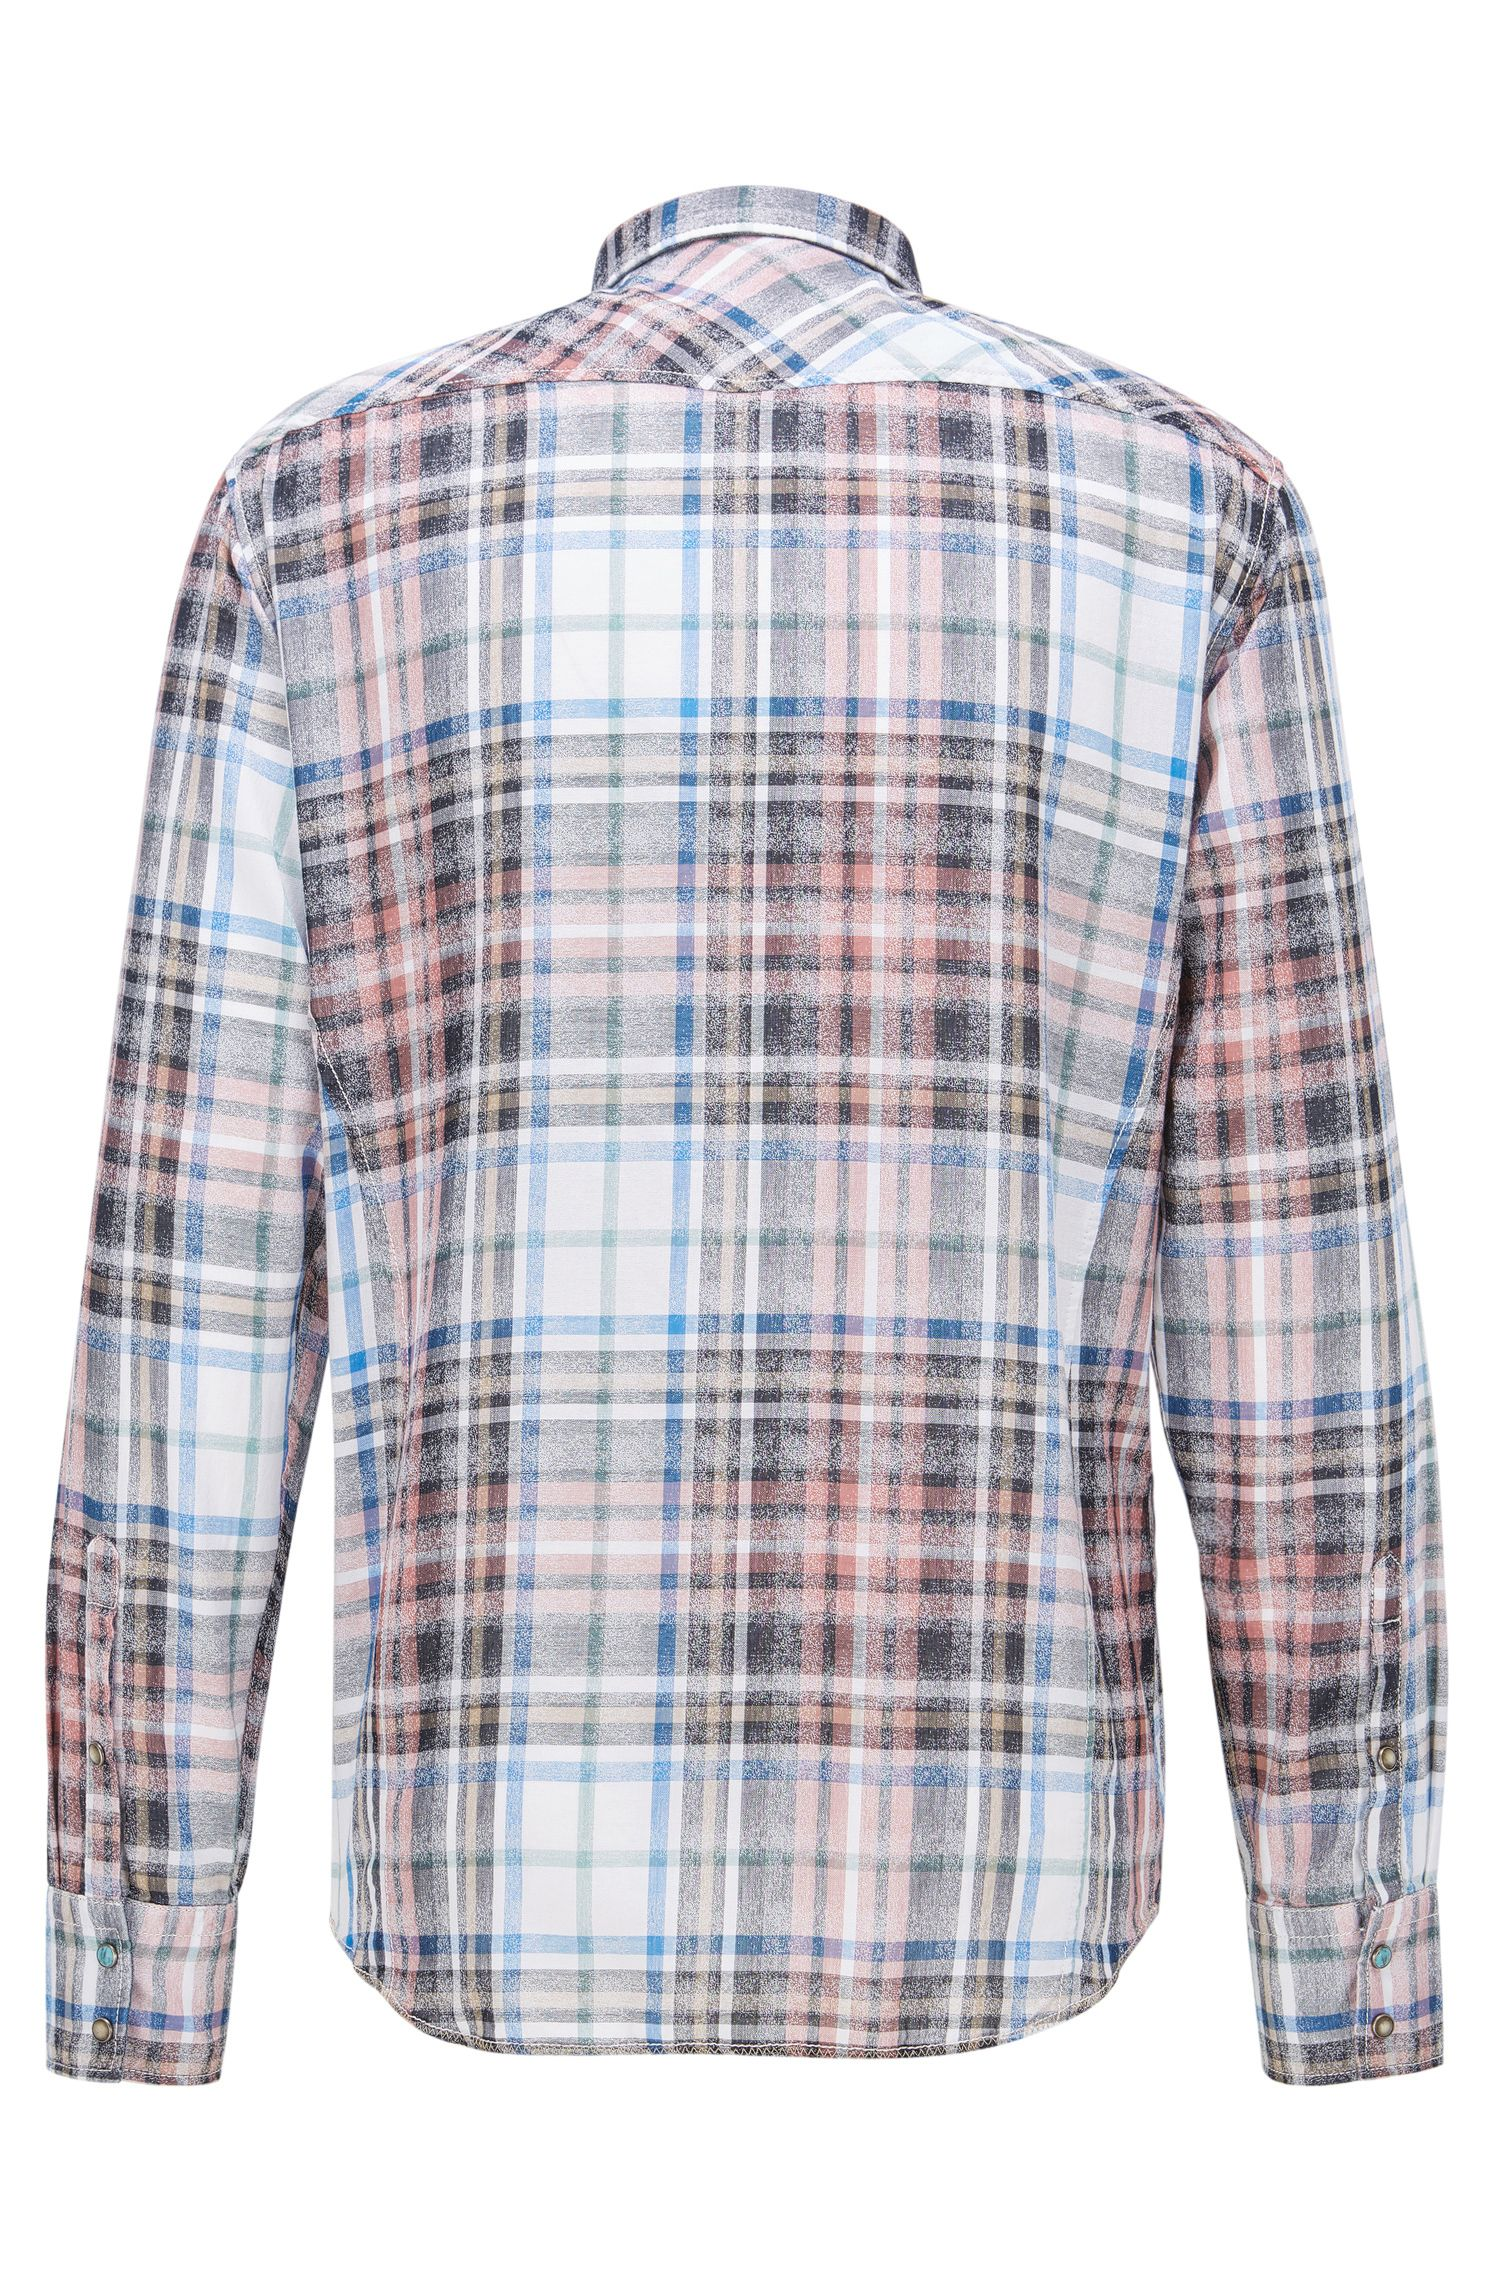 Plaid Cotton Sport Shirt, Extra Slim Fit | Erodeo, light pink